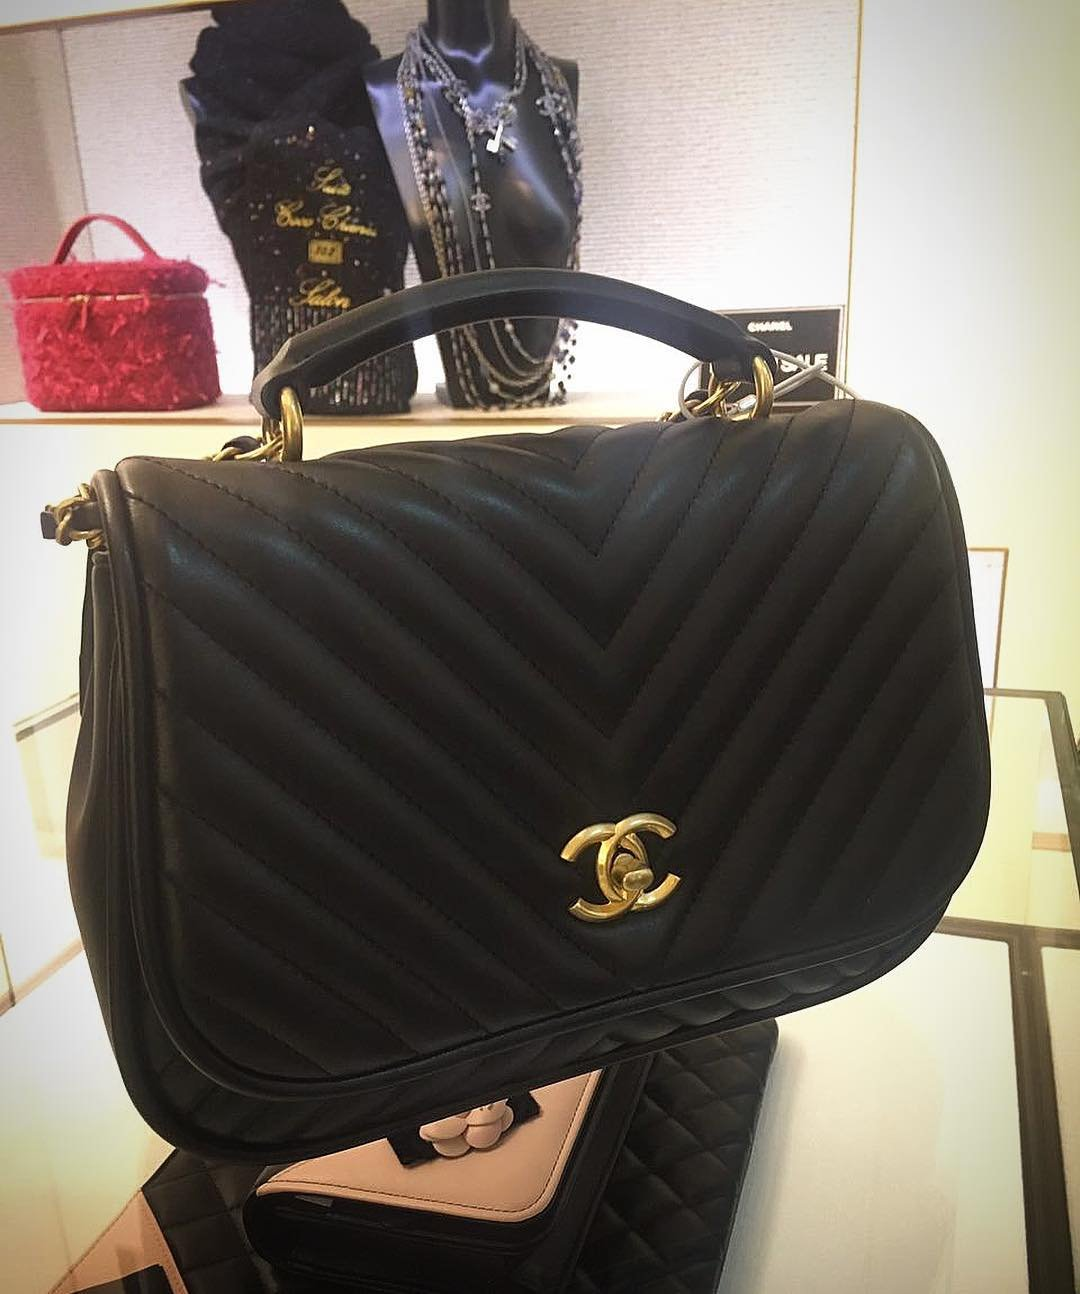 Chanel-Reversed-Chevron-Round-Flap-Bag-2